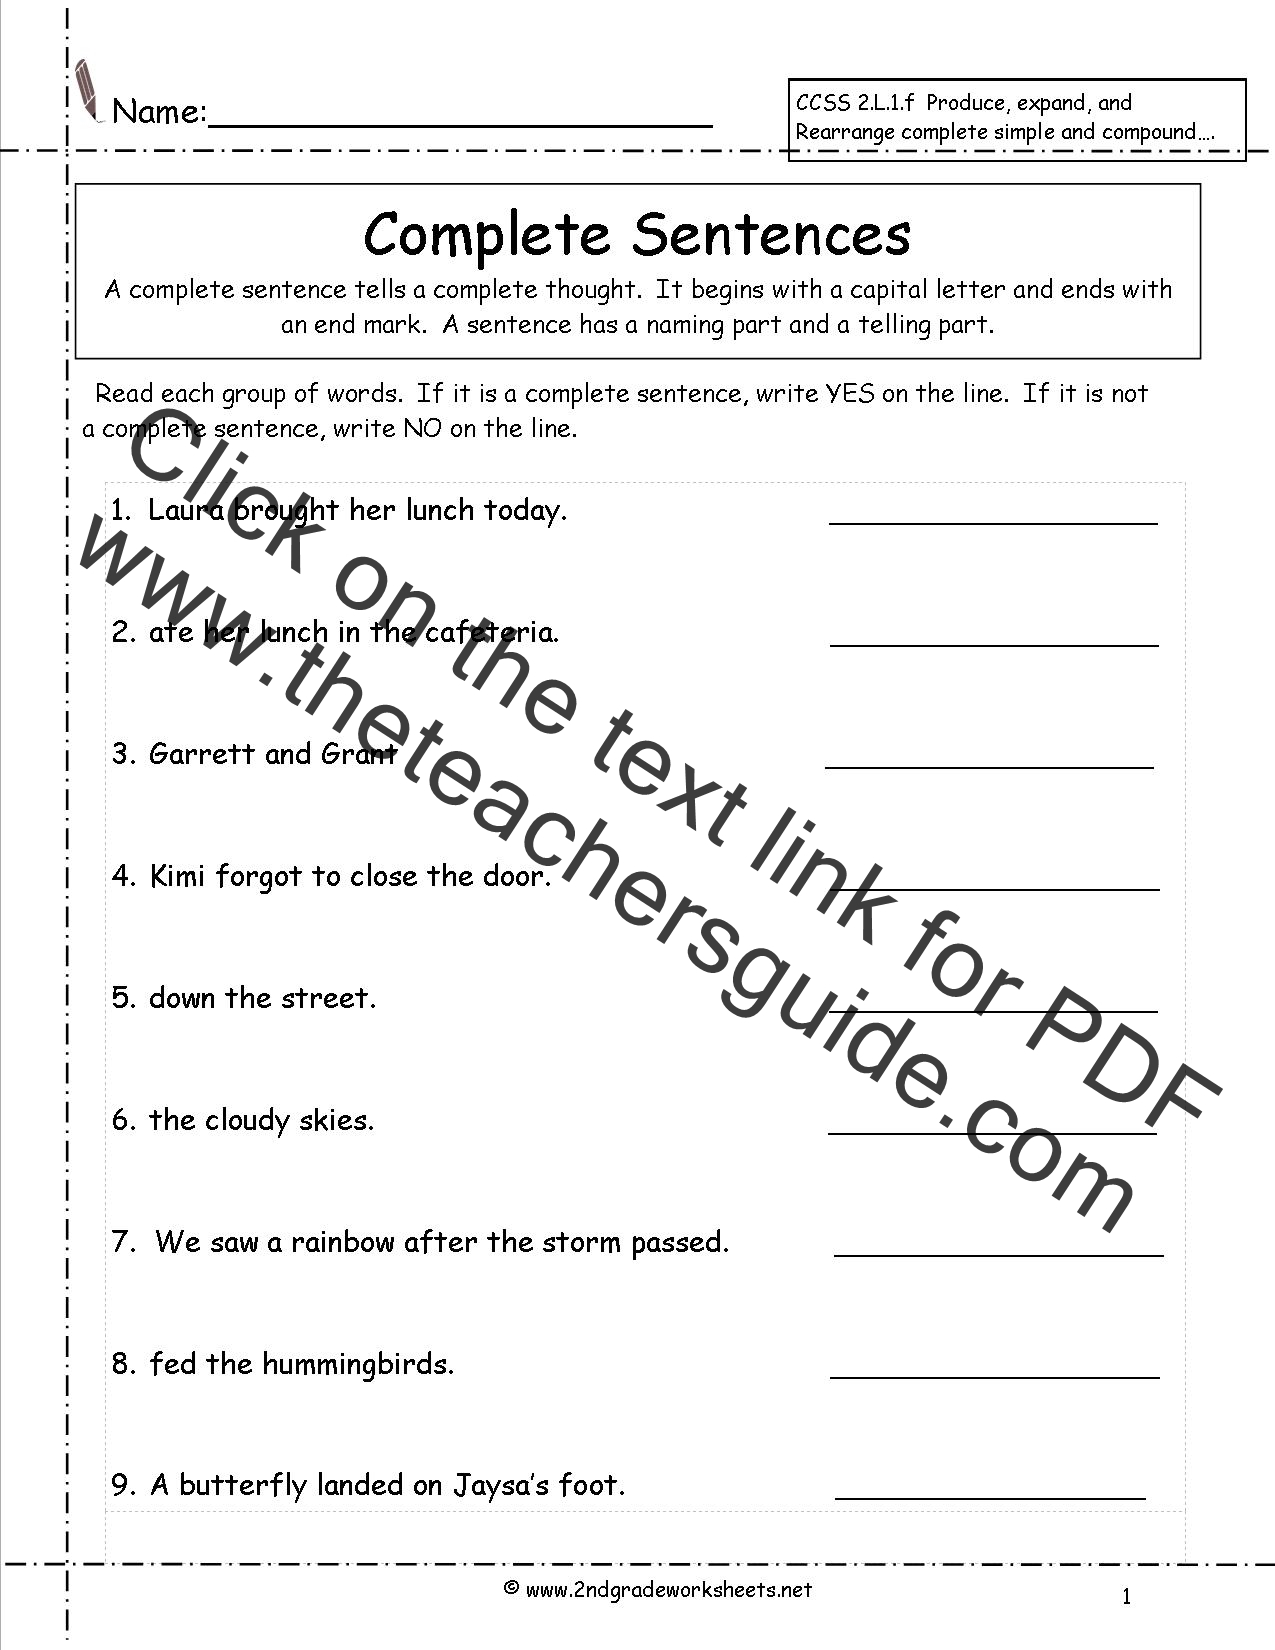 Worksheets Compound Sentence Worksheet second grade sentences worksheets ccss 2 l 1 f worksheets